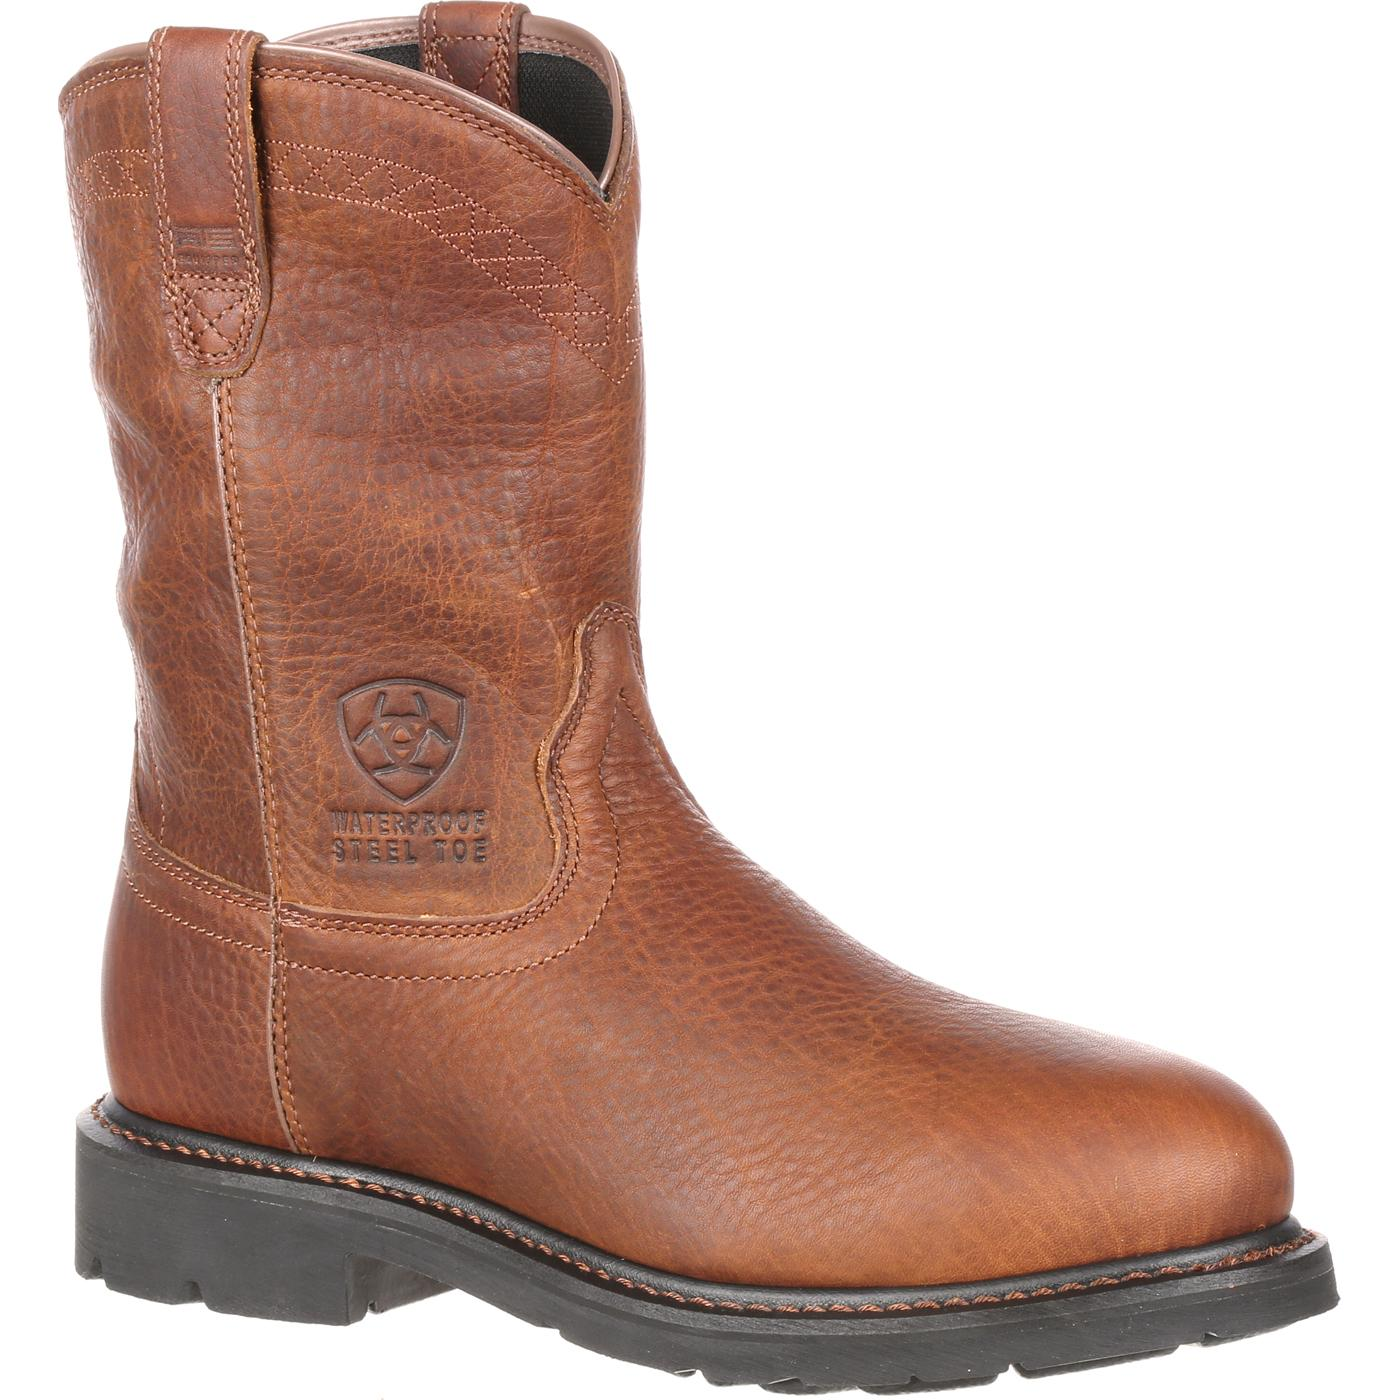 Ariat Sierra H2o Steel Toe Waterproof Wellington 10002387